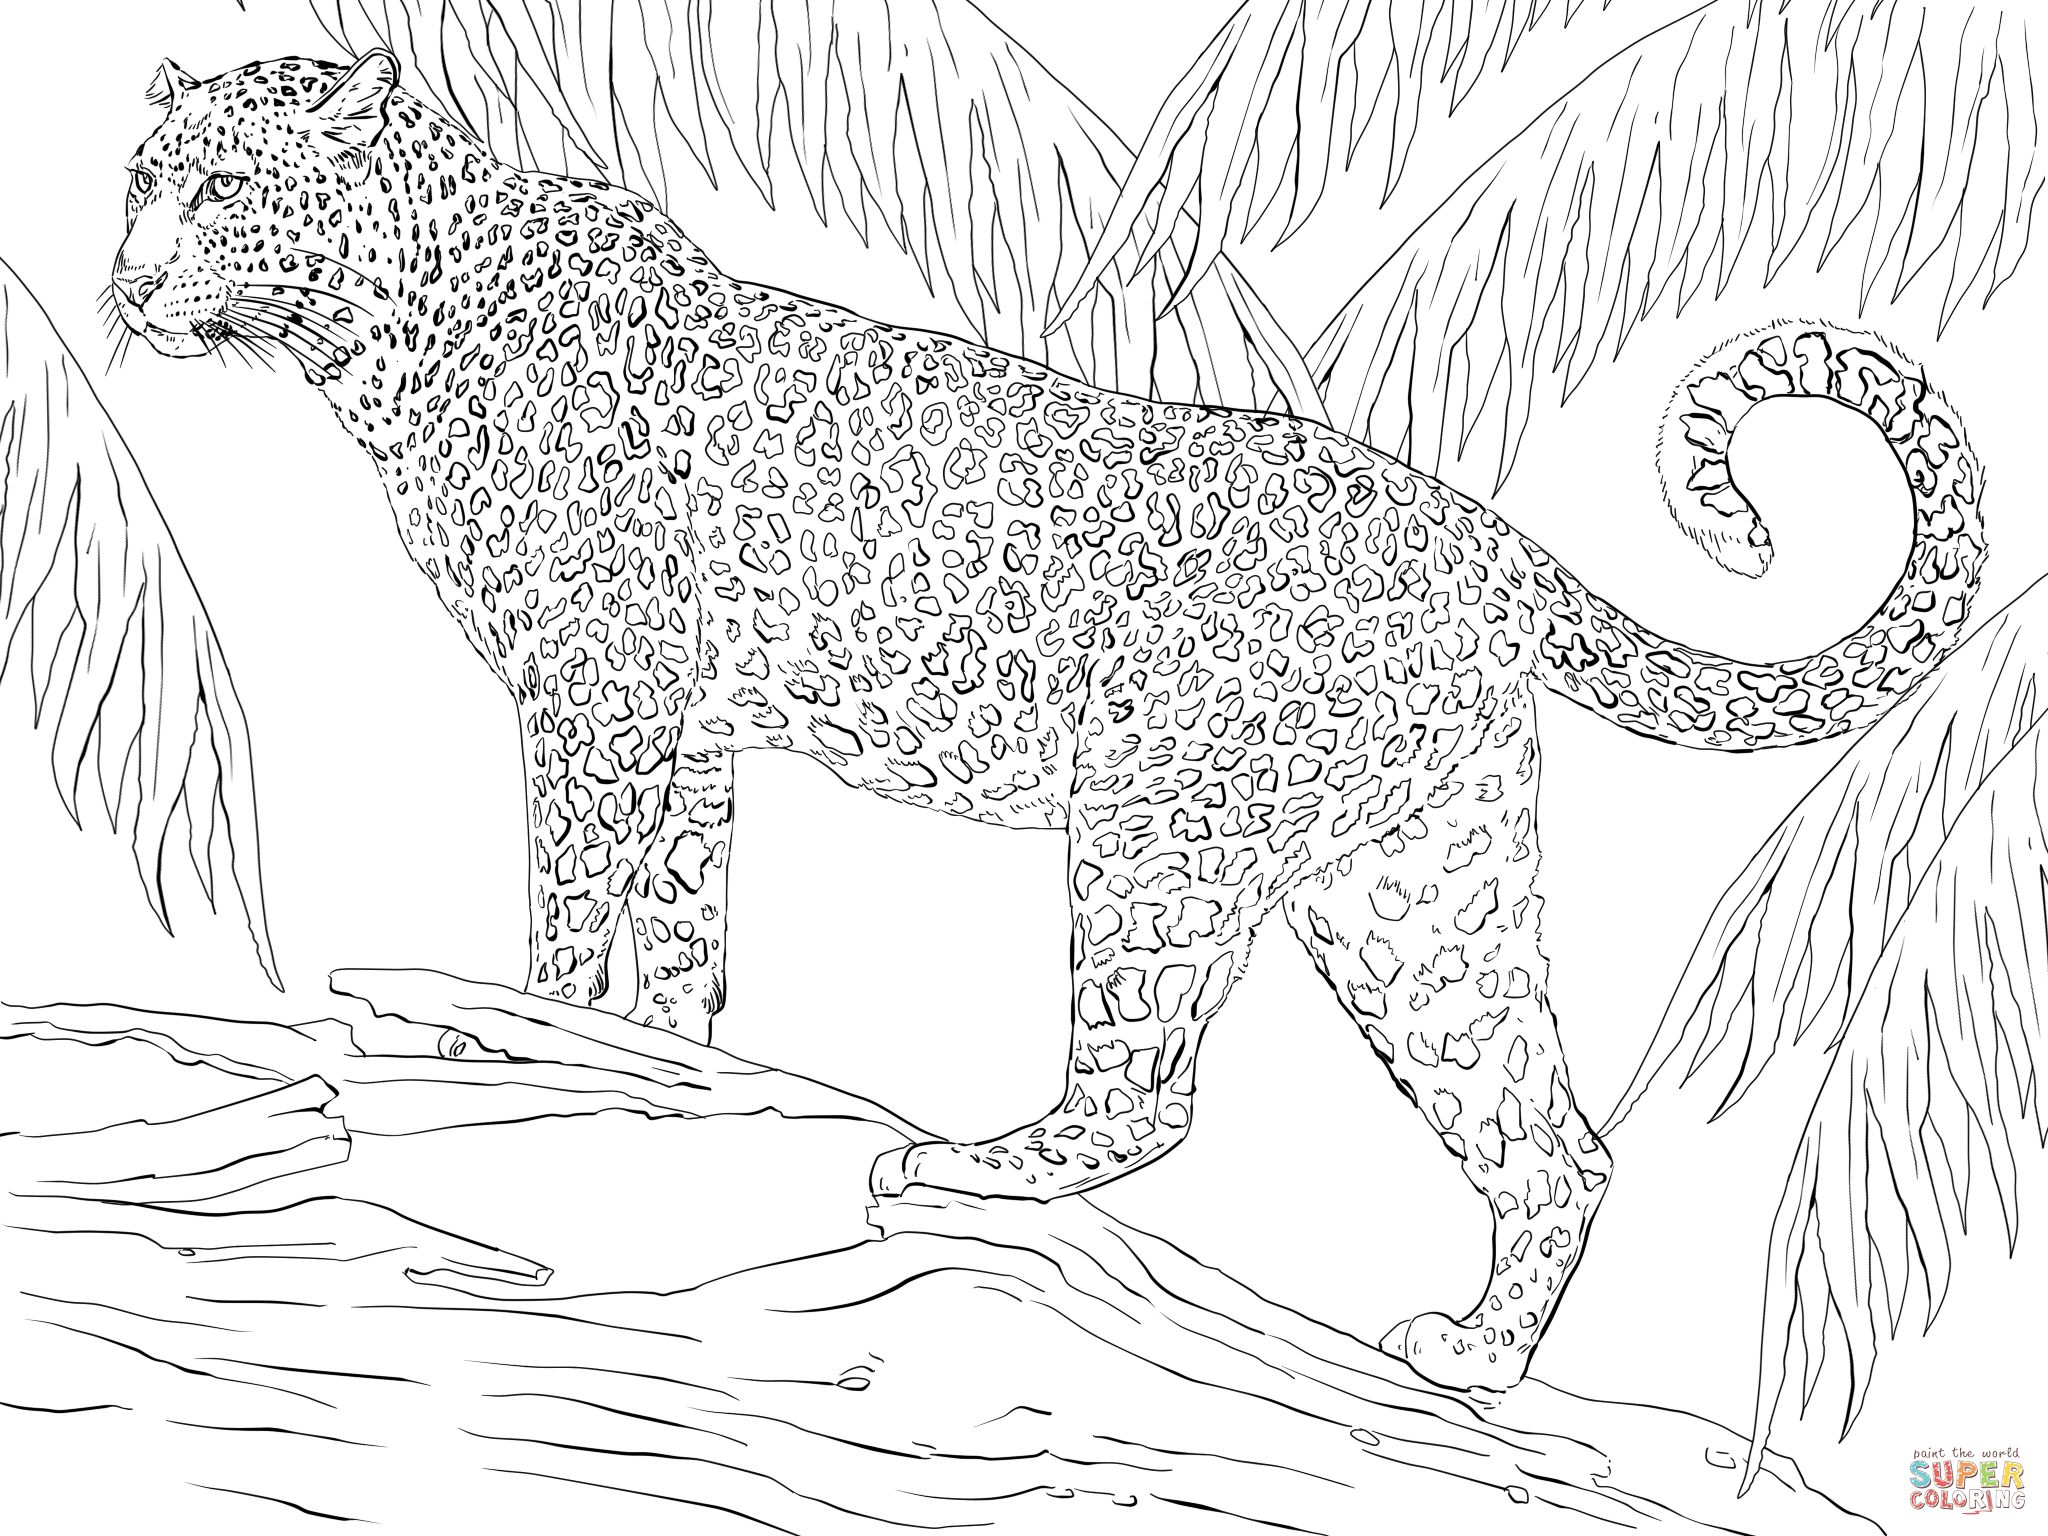 Jaguar Coloring Pages Cat Coloring Page Zoo Animal Coloring Pages Animal Coloring Pages